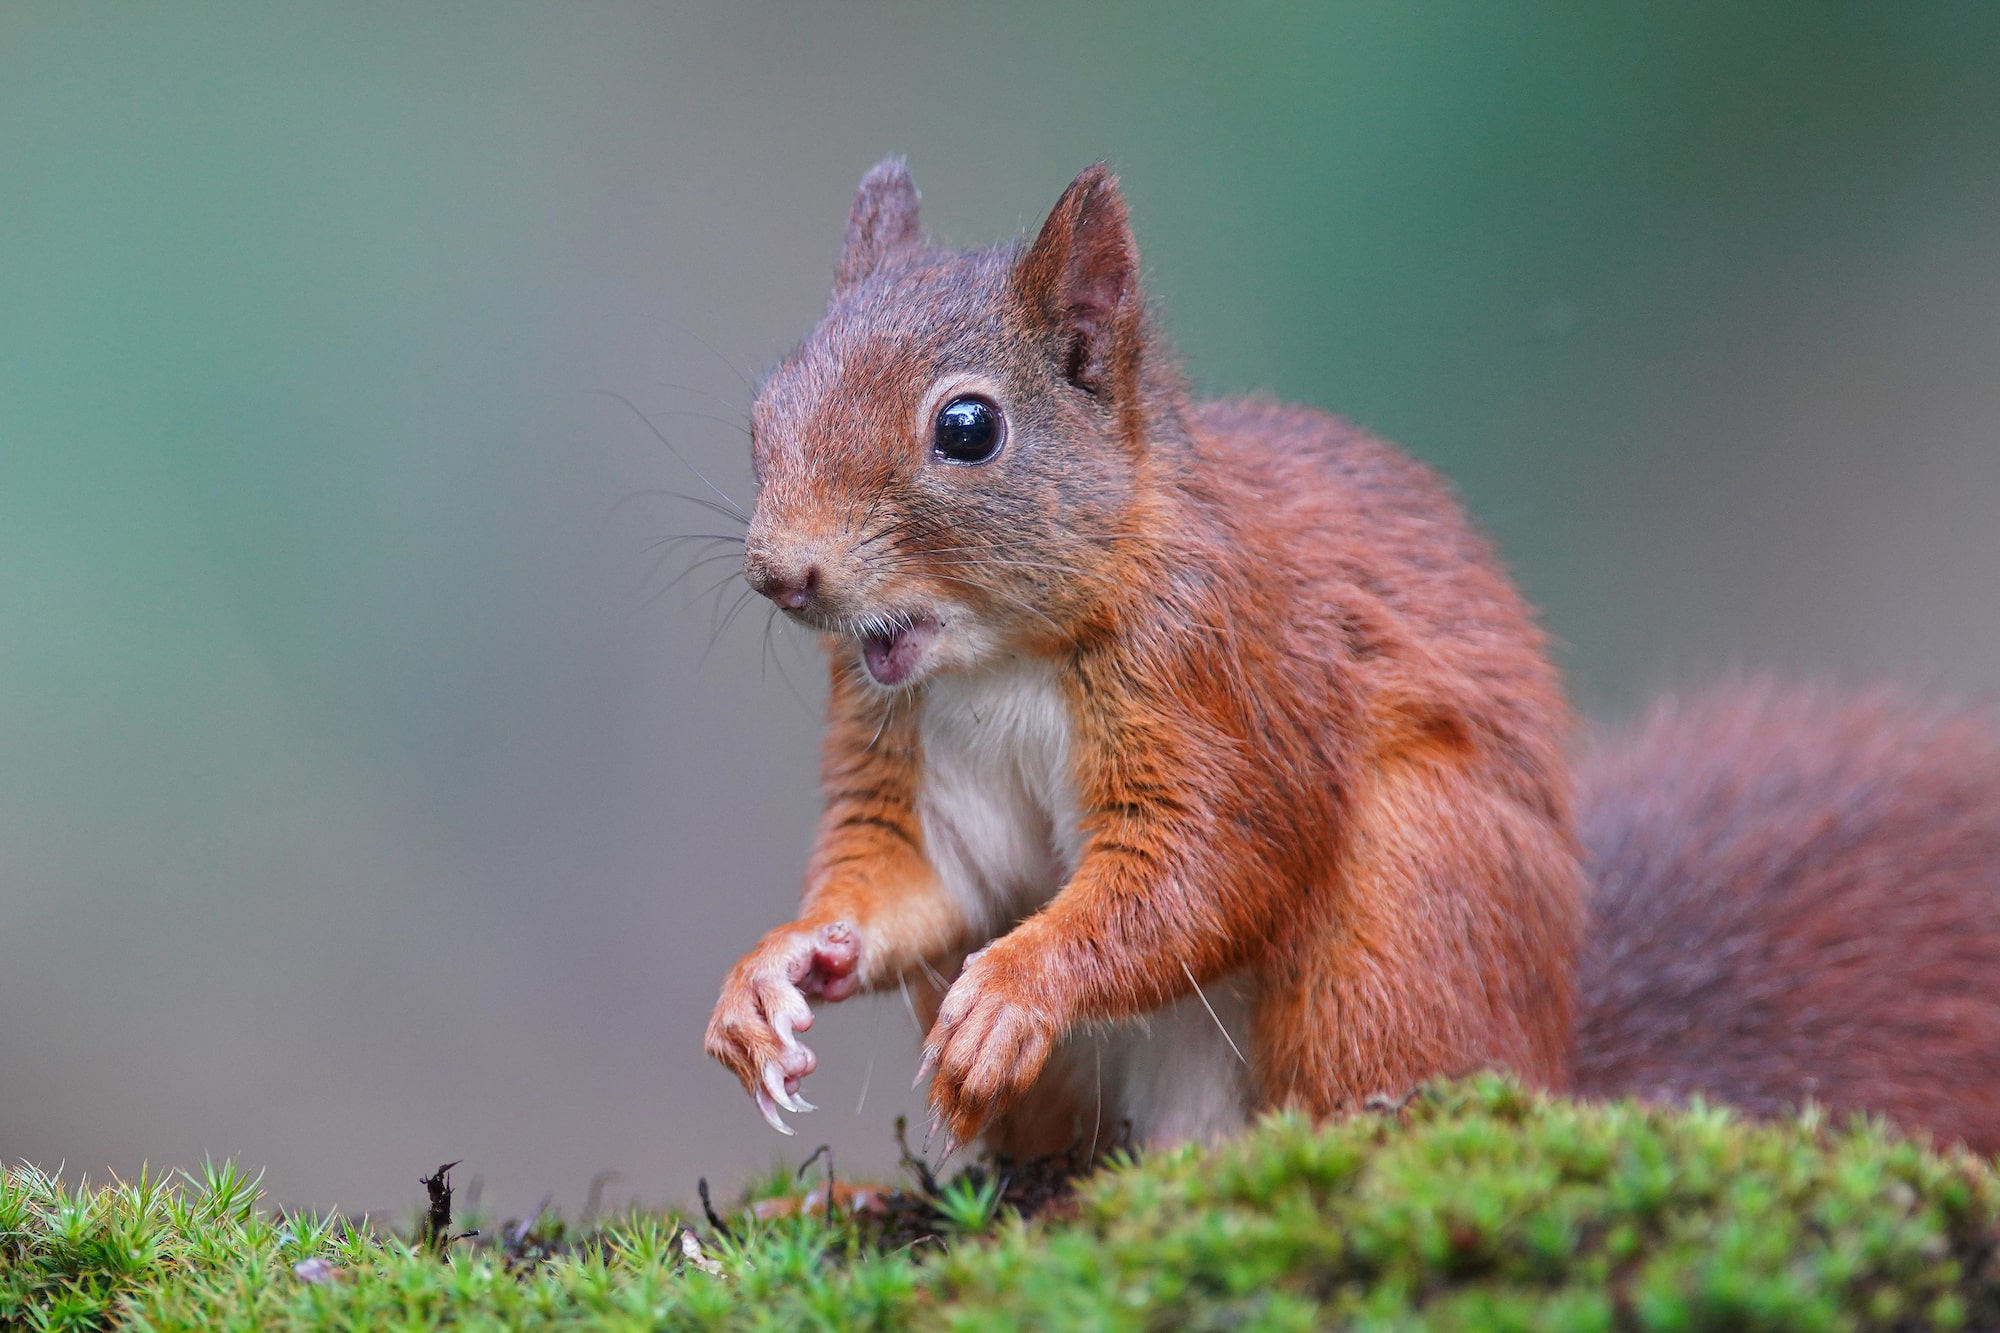 gustav kiburg sony alpha 7RM4 red squirrel standing with his paws outstretched